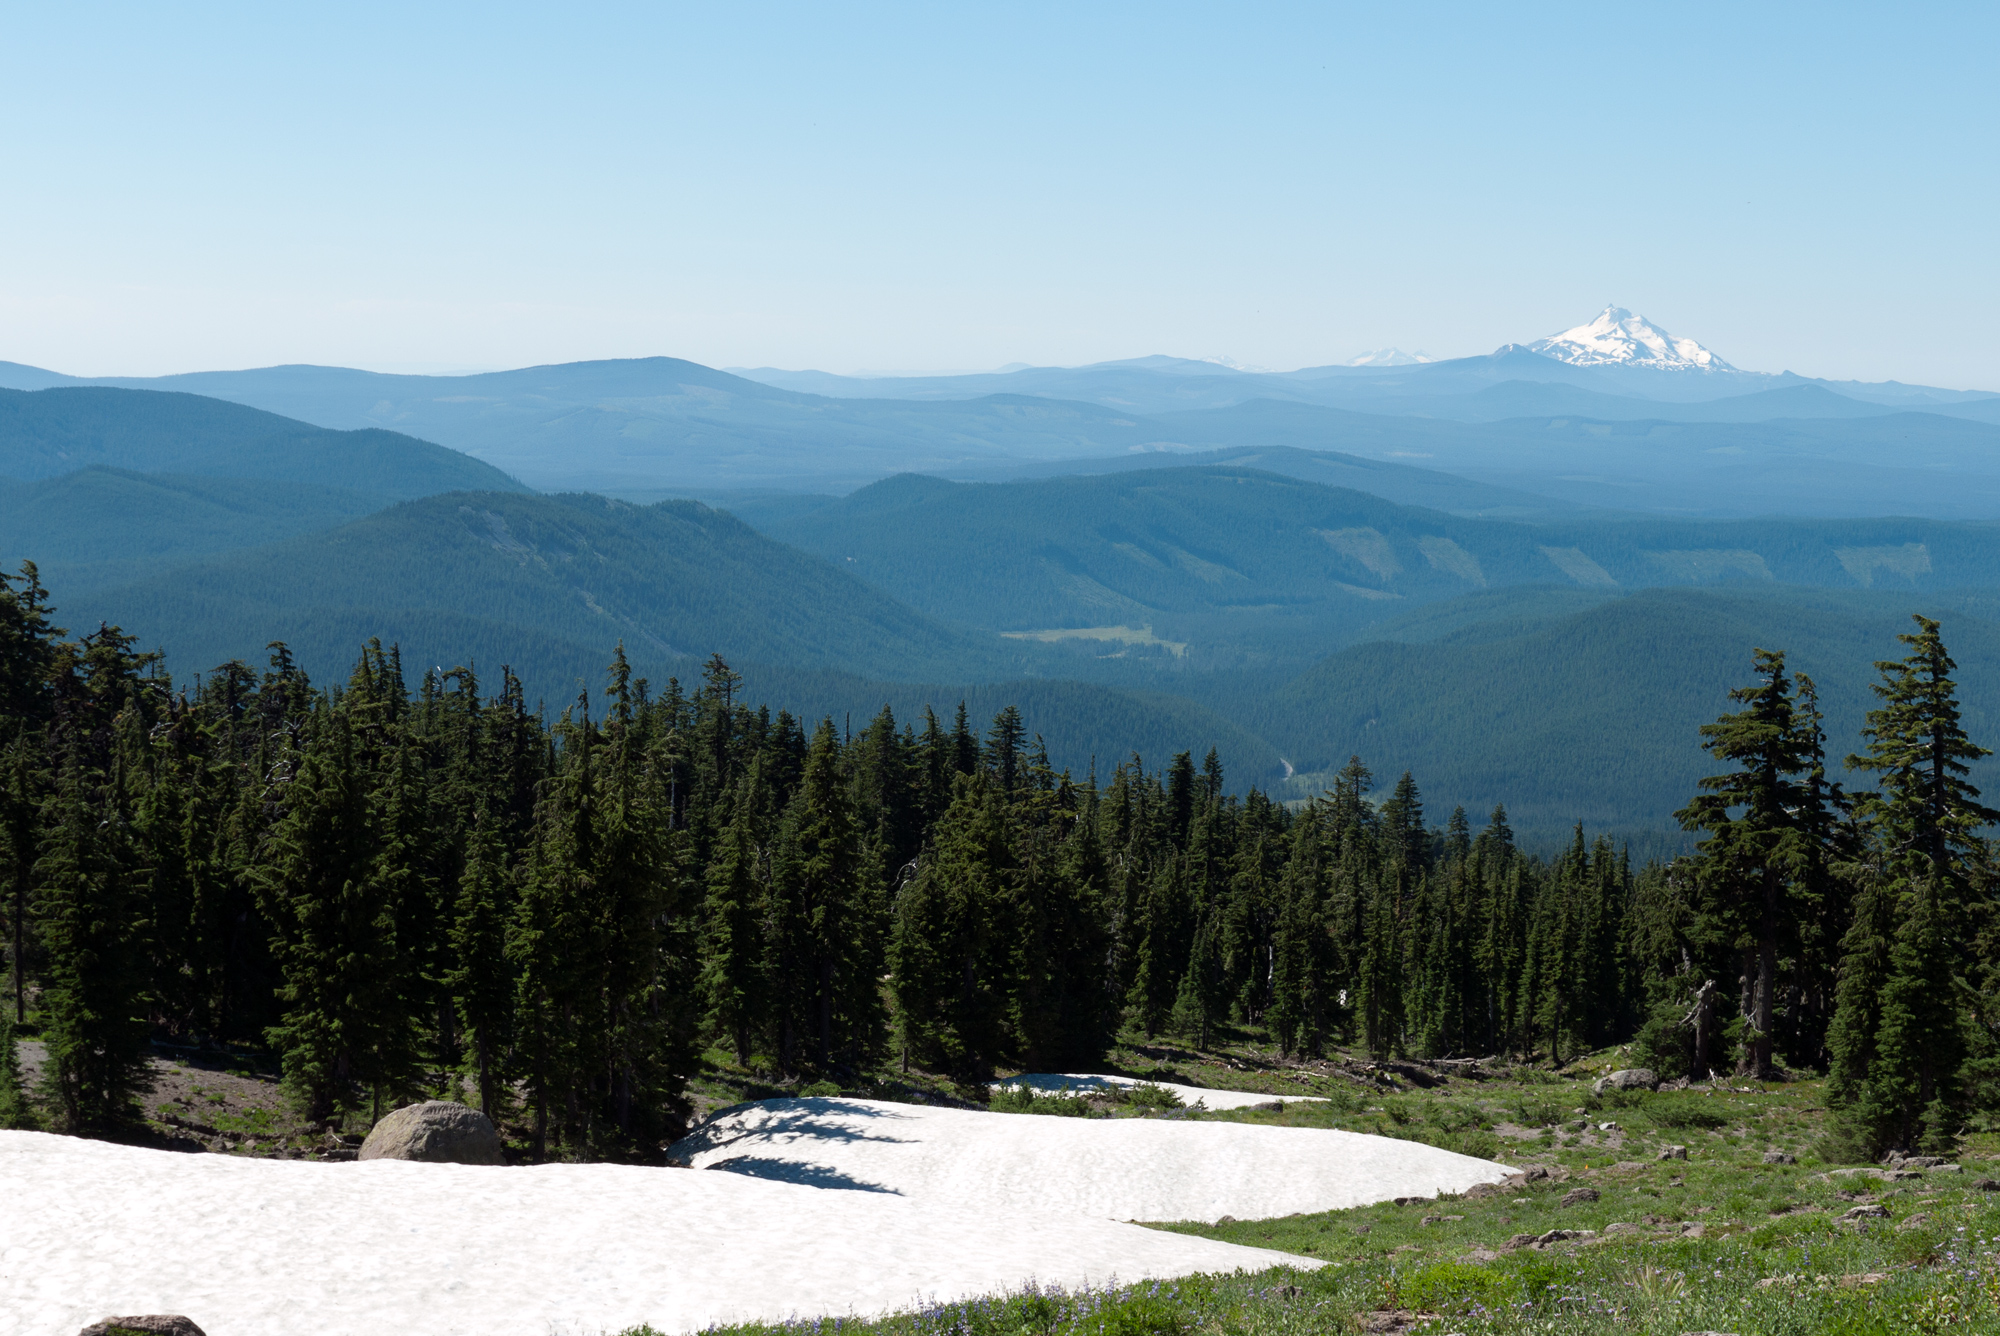 The view from Mt. Hood